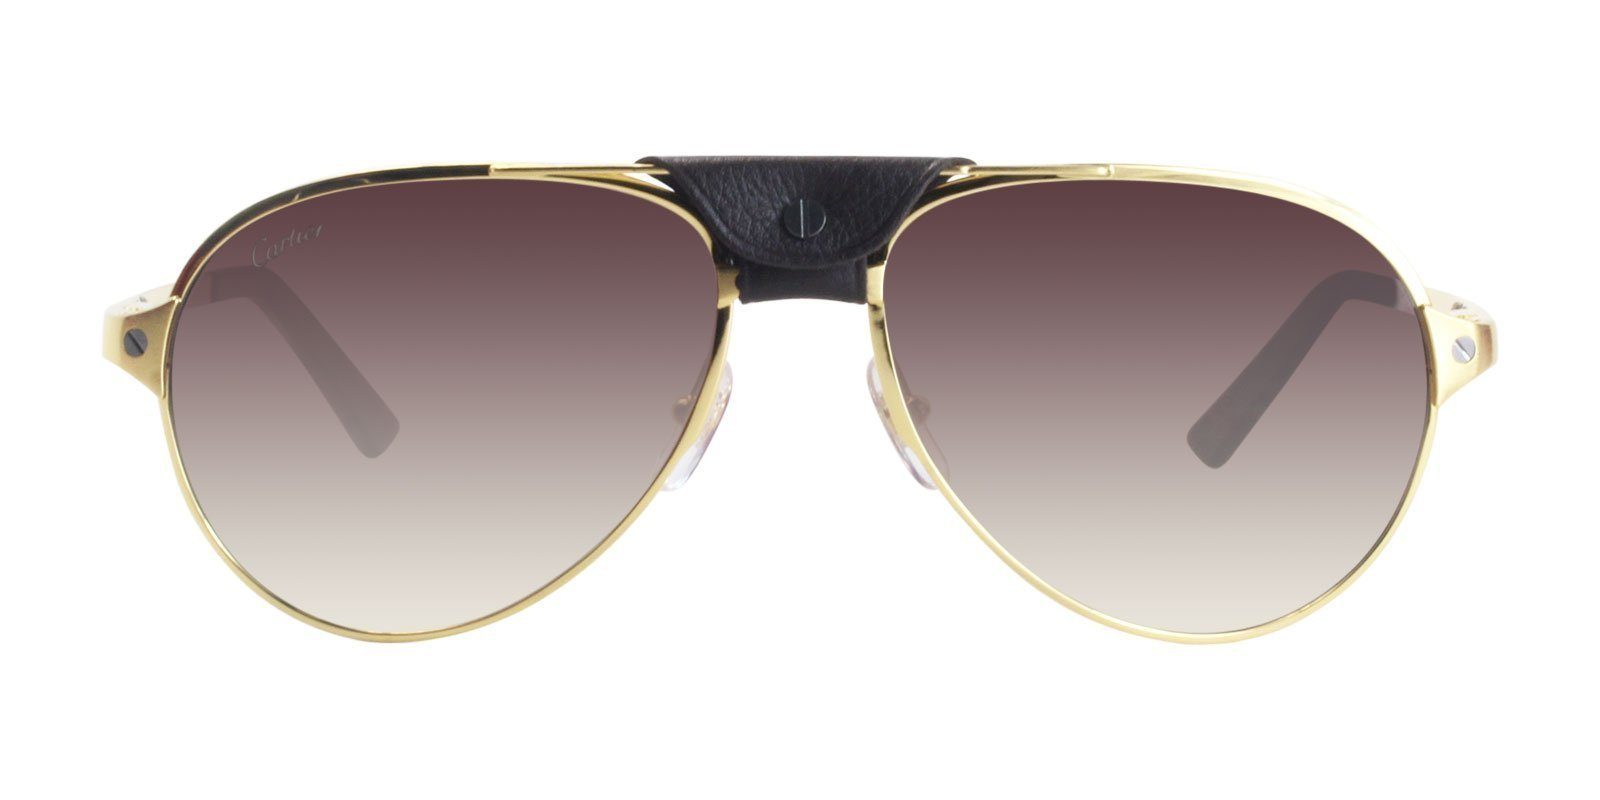 Cartier - CT0034S Shiny Or Pale - Brown Aviator Men Sunglasses - 59mm-Sunglasses-Designer Eyes